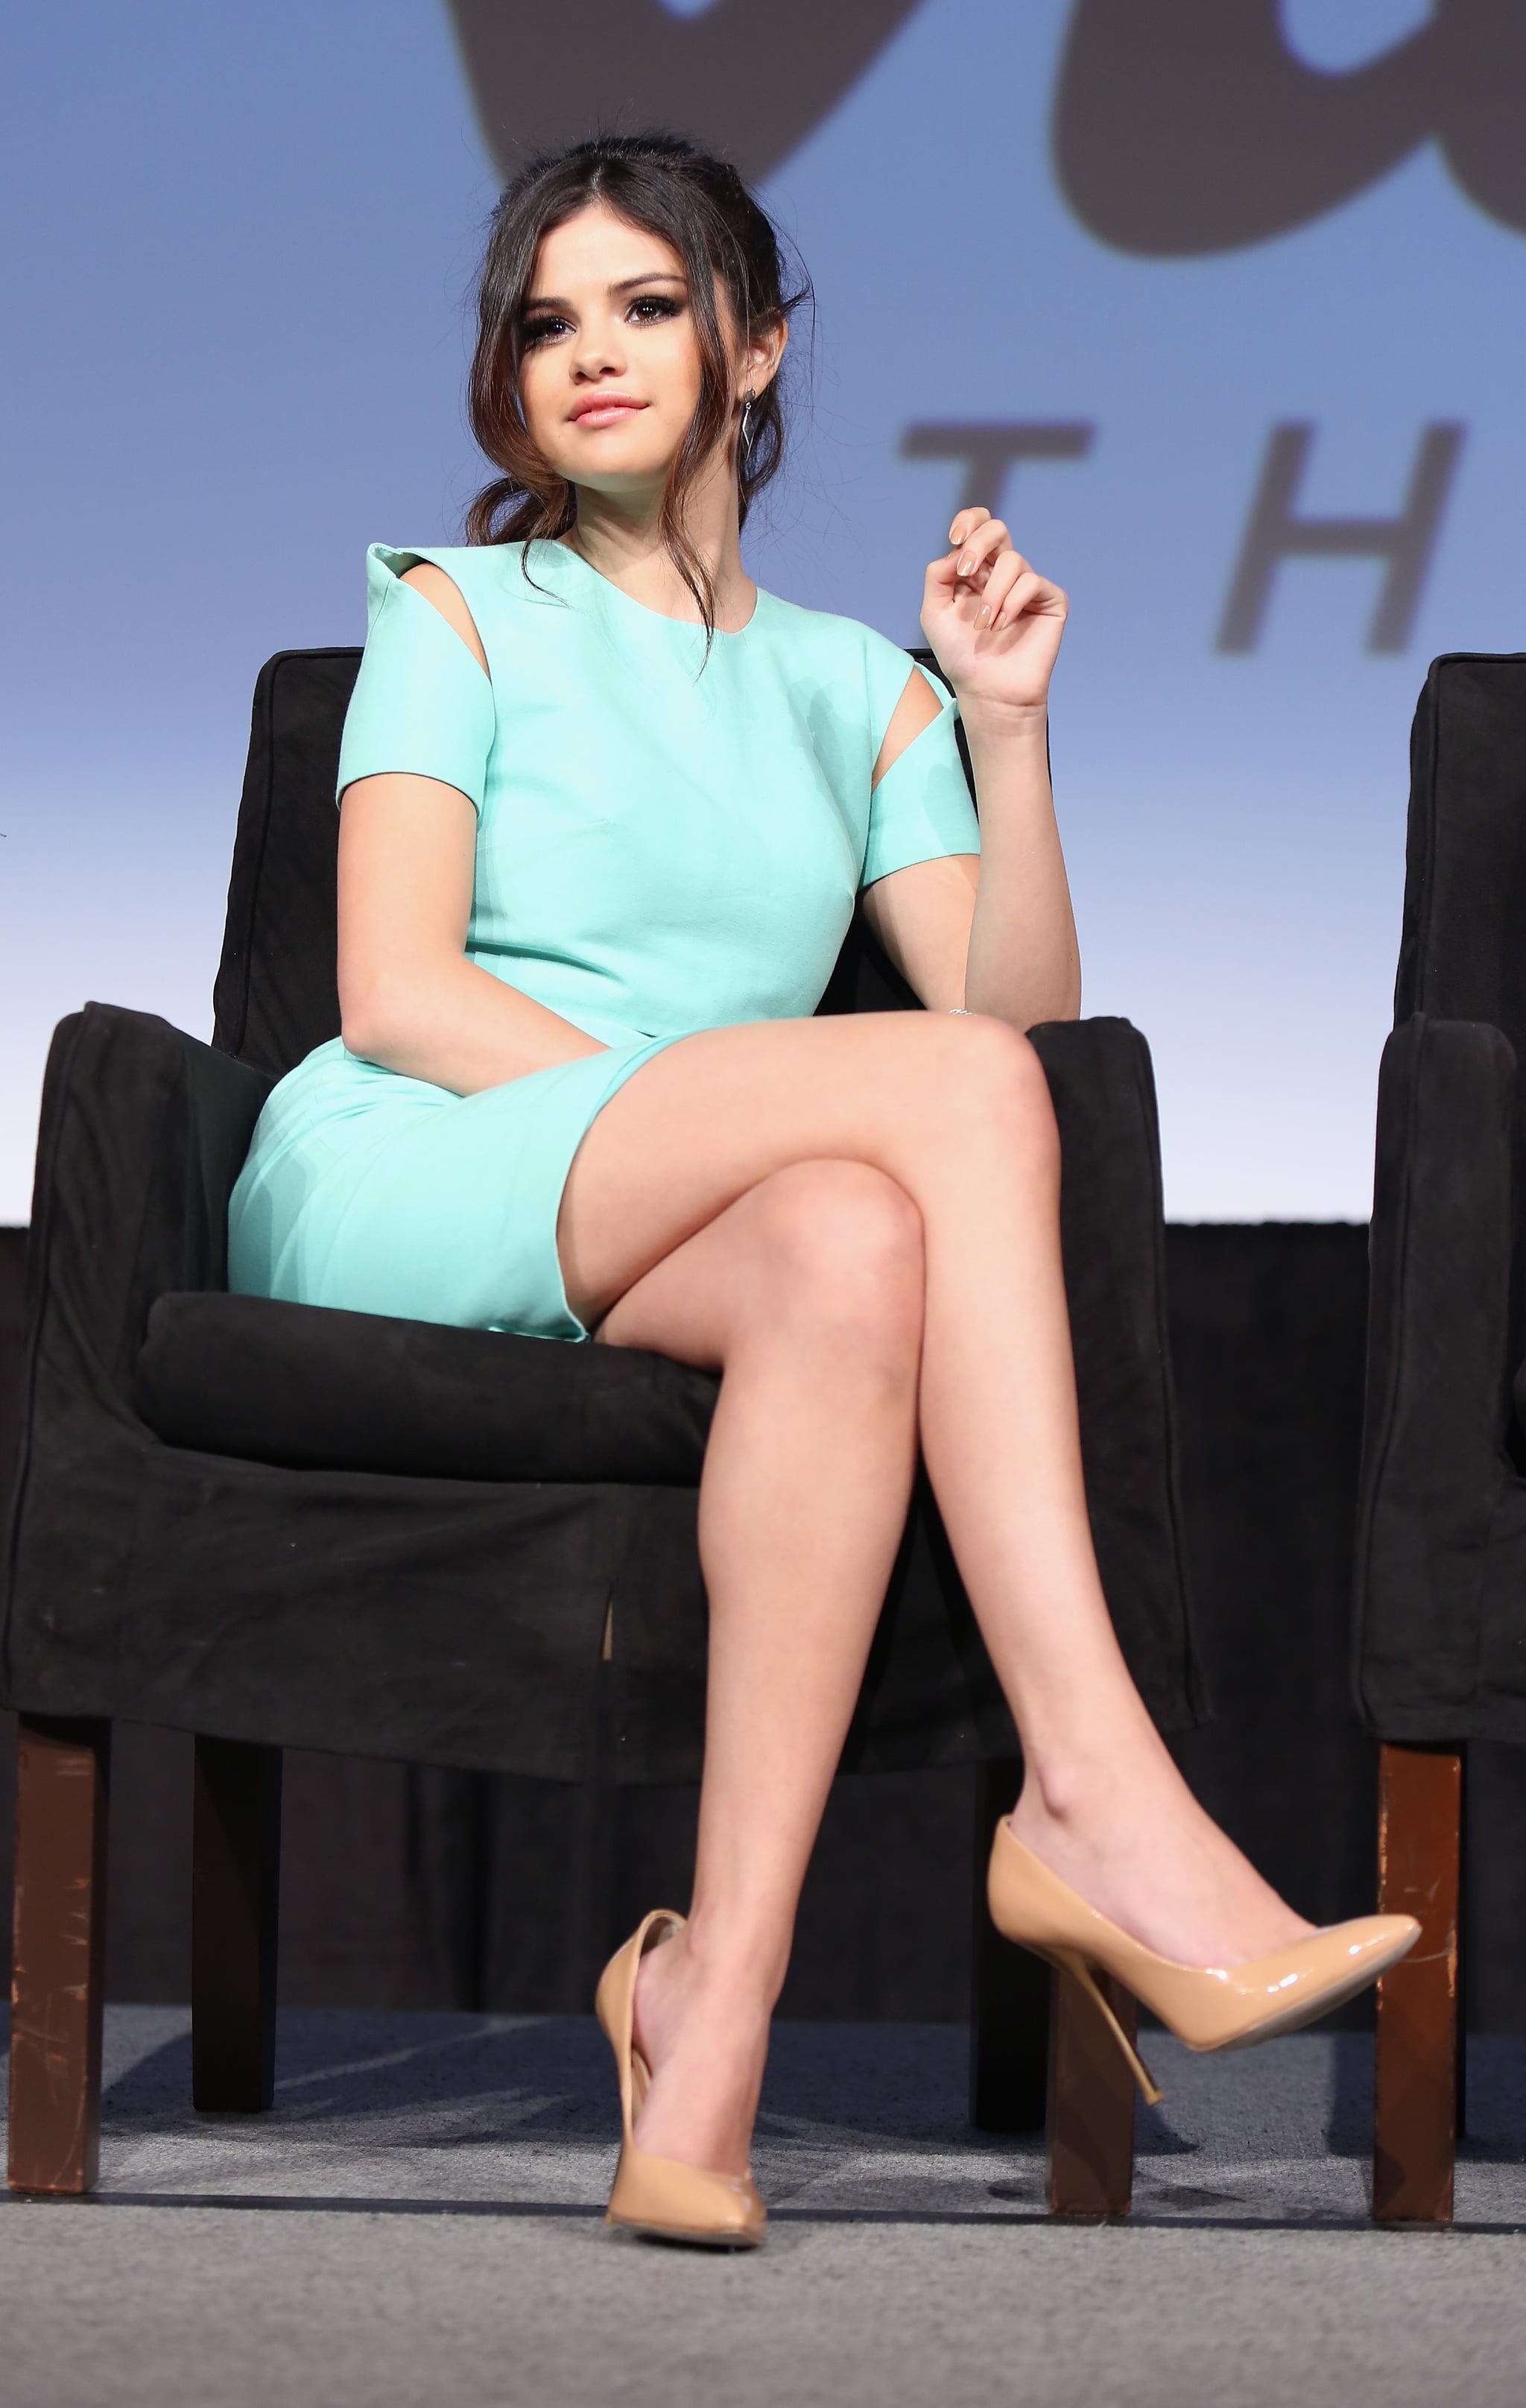 Selena Gomez showed off her stems in a Spring-feeling Cushnie et Ochs sheath on stage, promoting Spring Breakers.